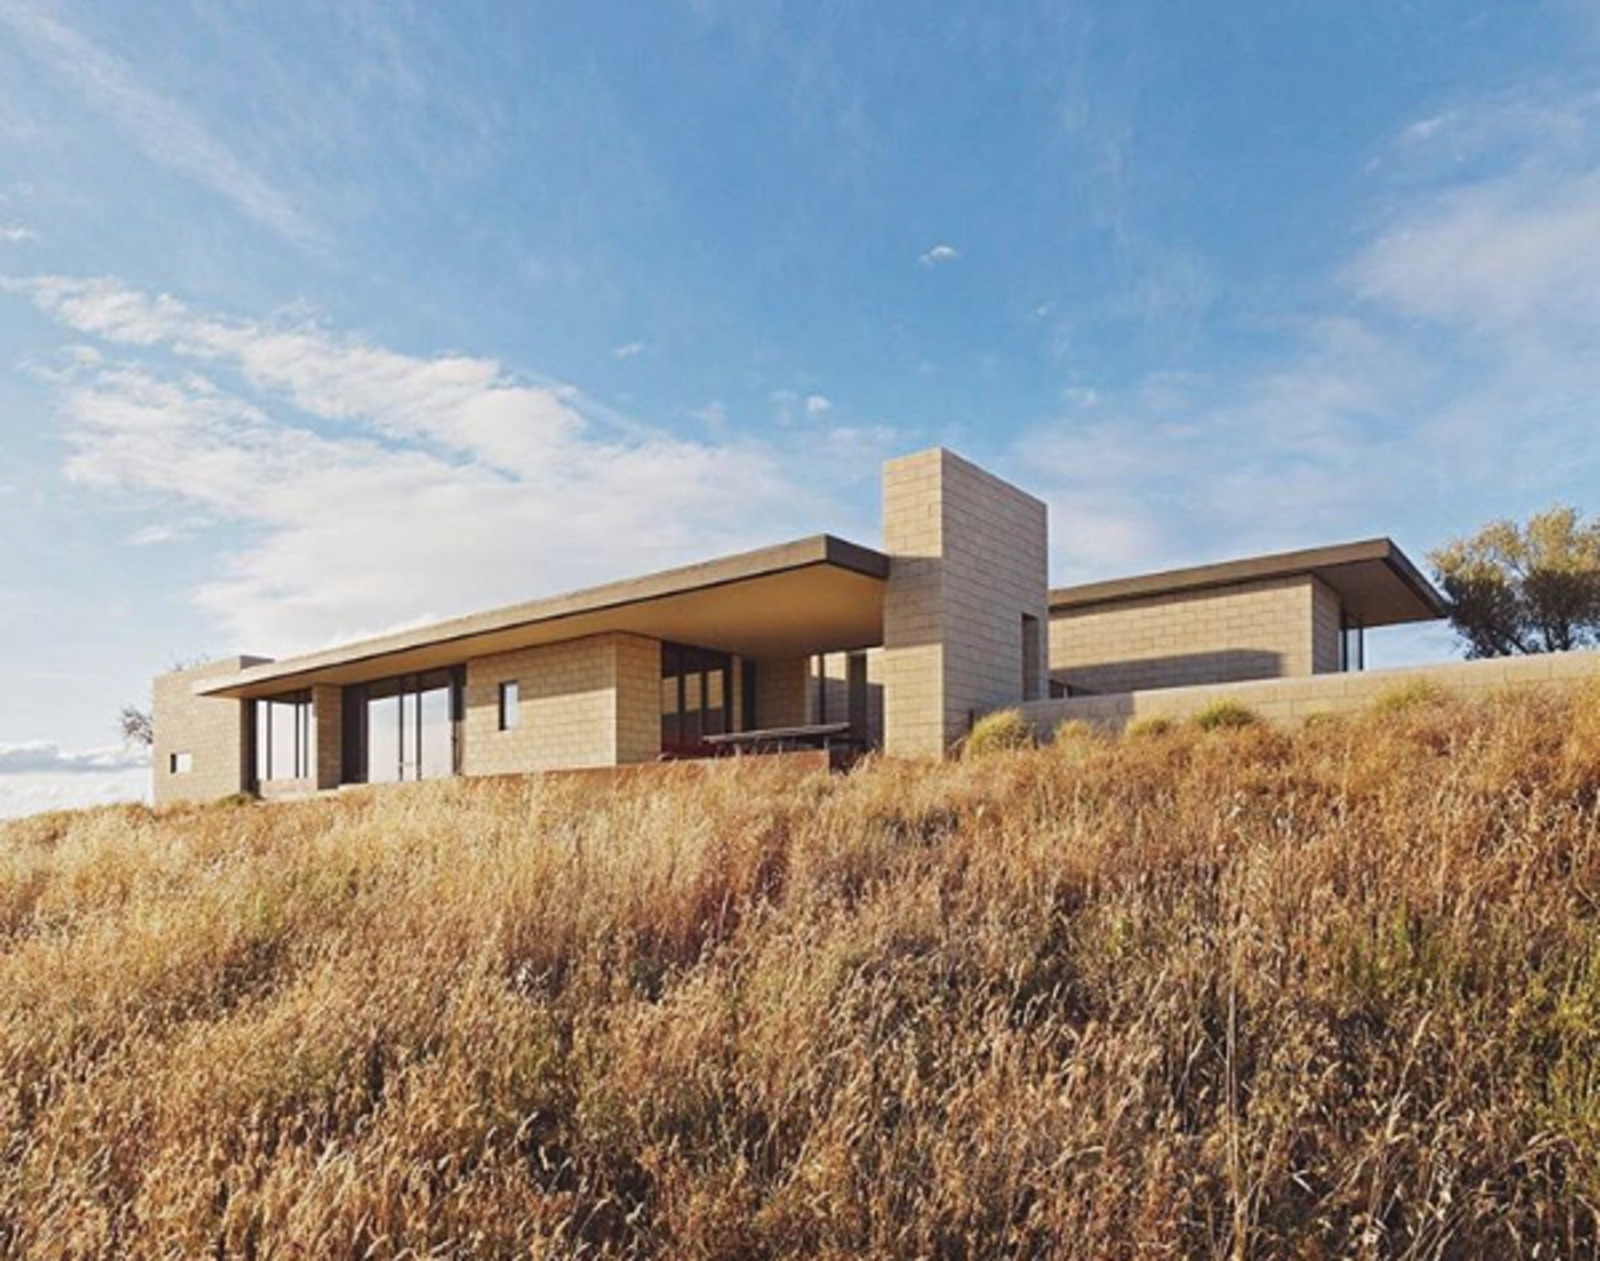 San Francisco Weekend Escapes by Rick Rochon from Photo of the Week: California Modern Home on an 80-Acre Farm